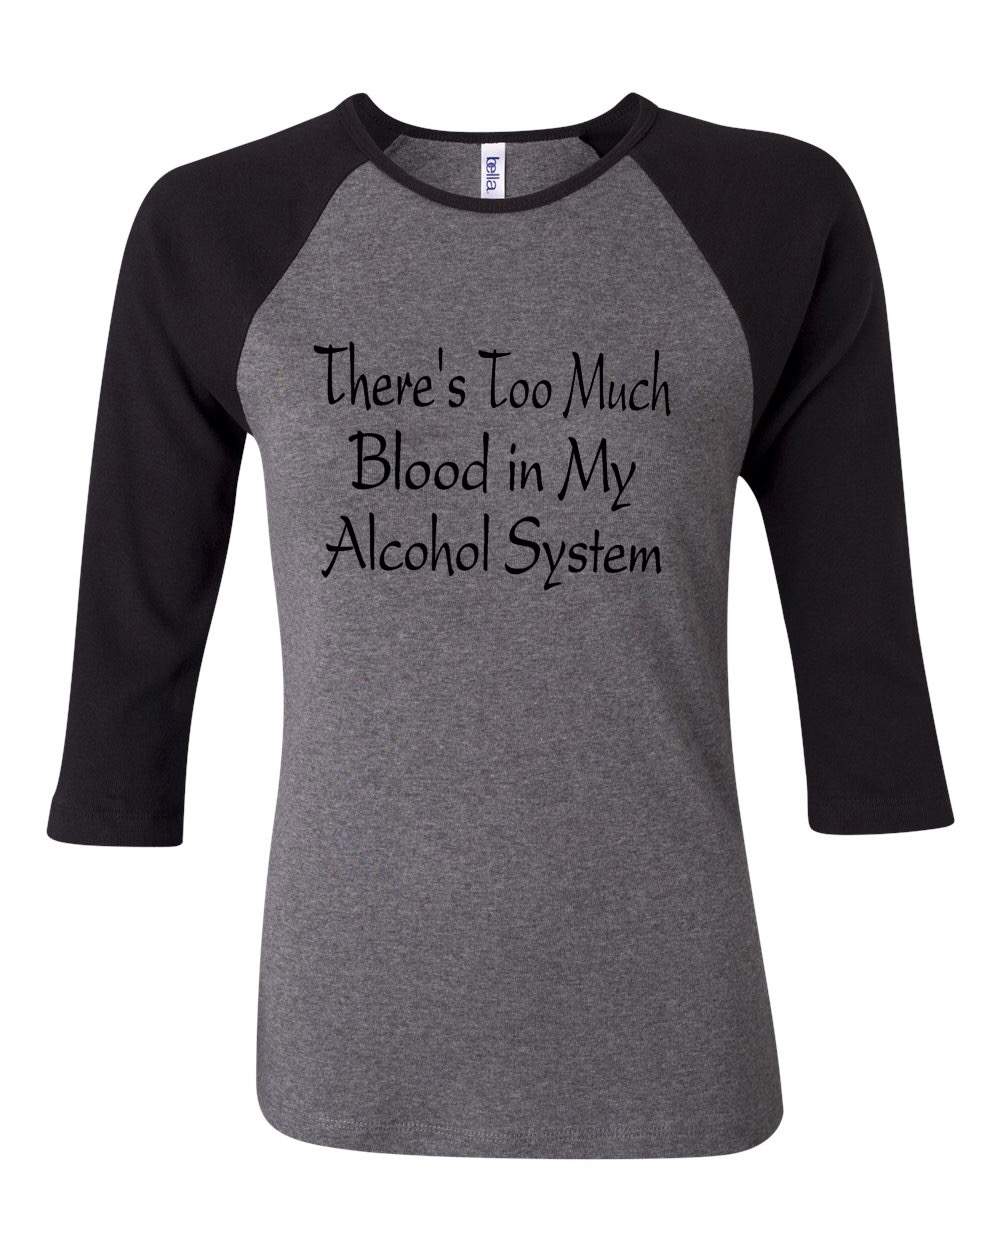 There's Too Much Blood In My Alcohol System.  Bella Brand Three Quarter Sleeve Tee